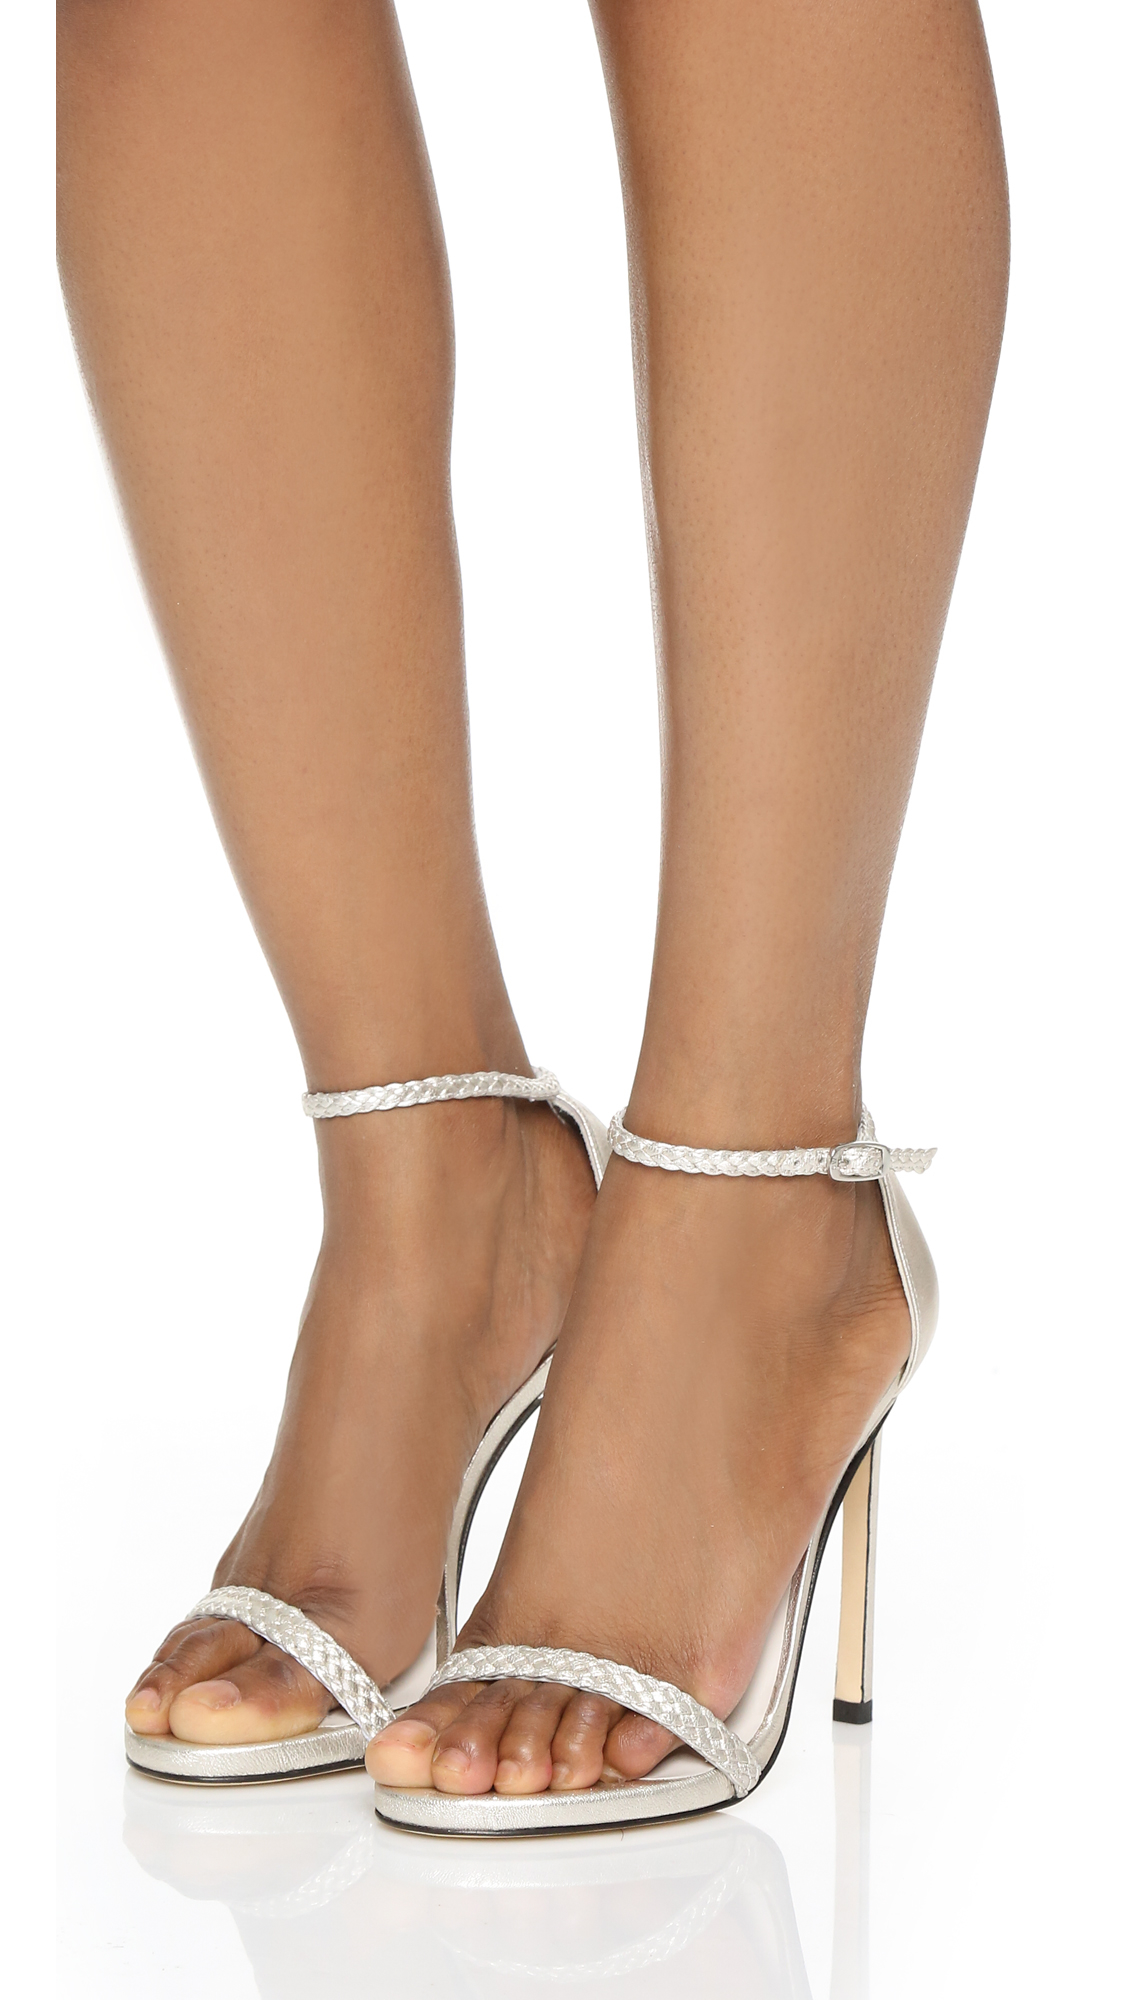 Lyst Stuart Weitzman Barebraid Sandals In White